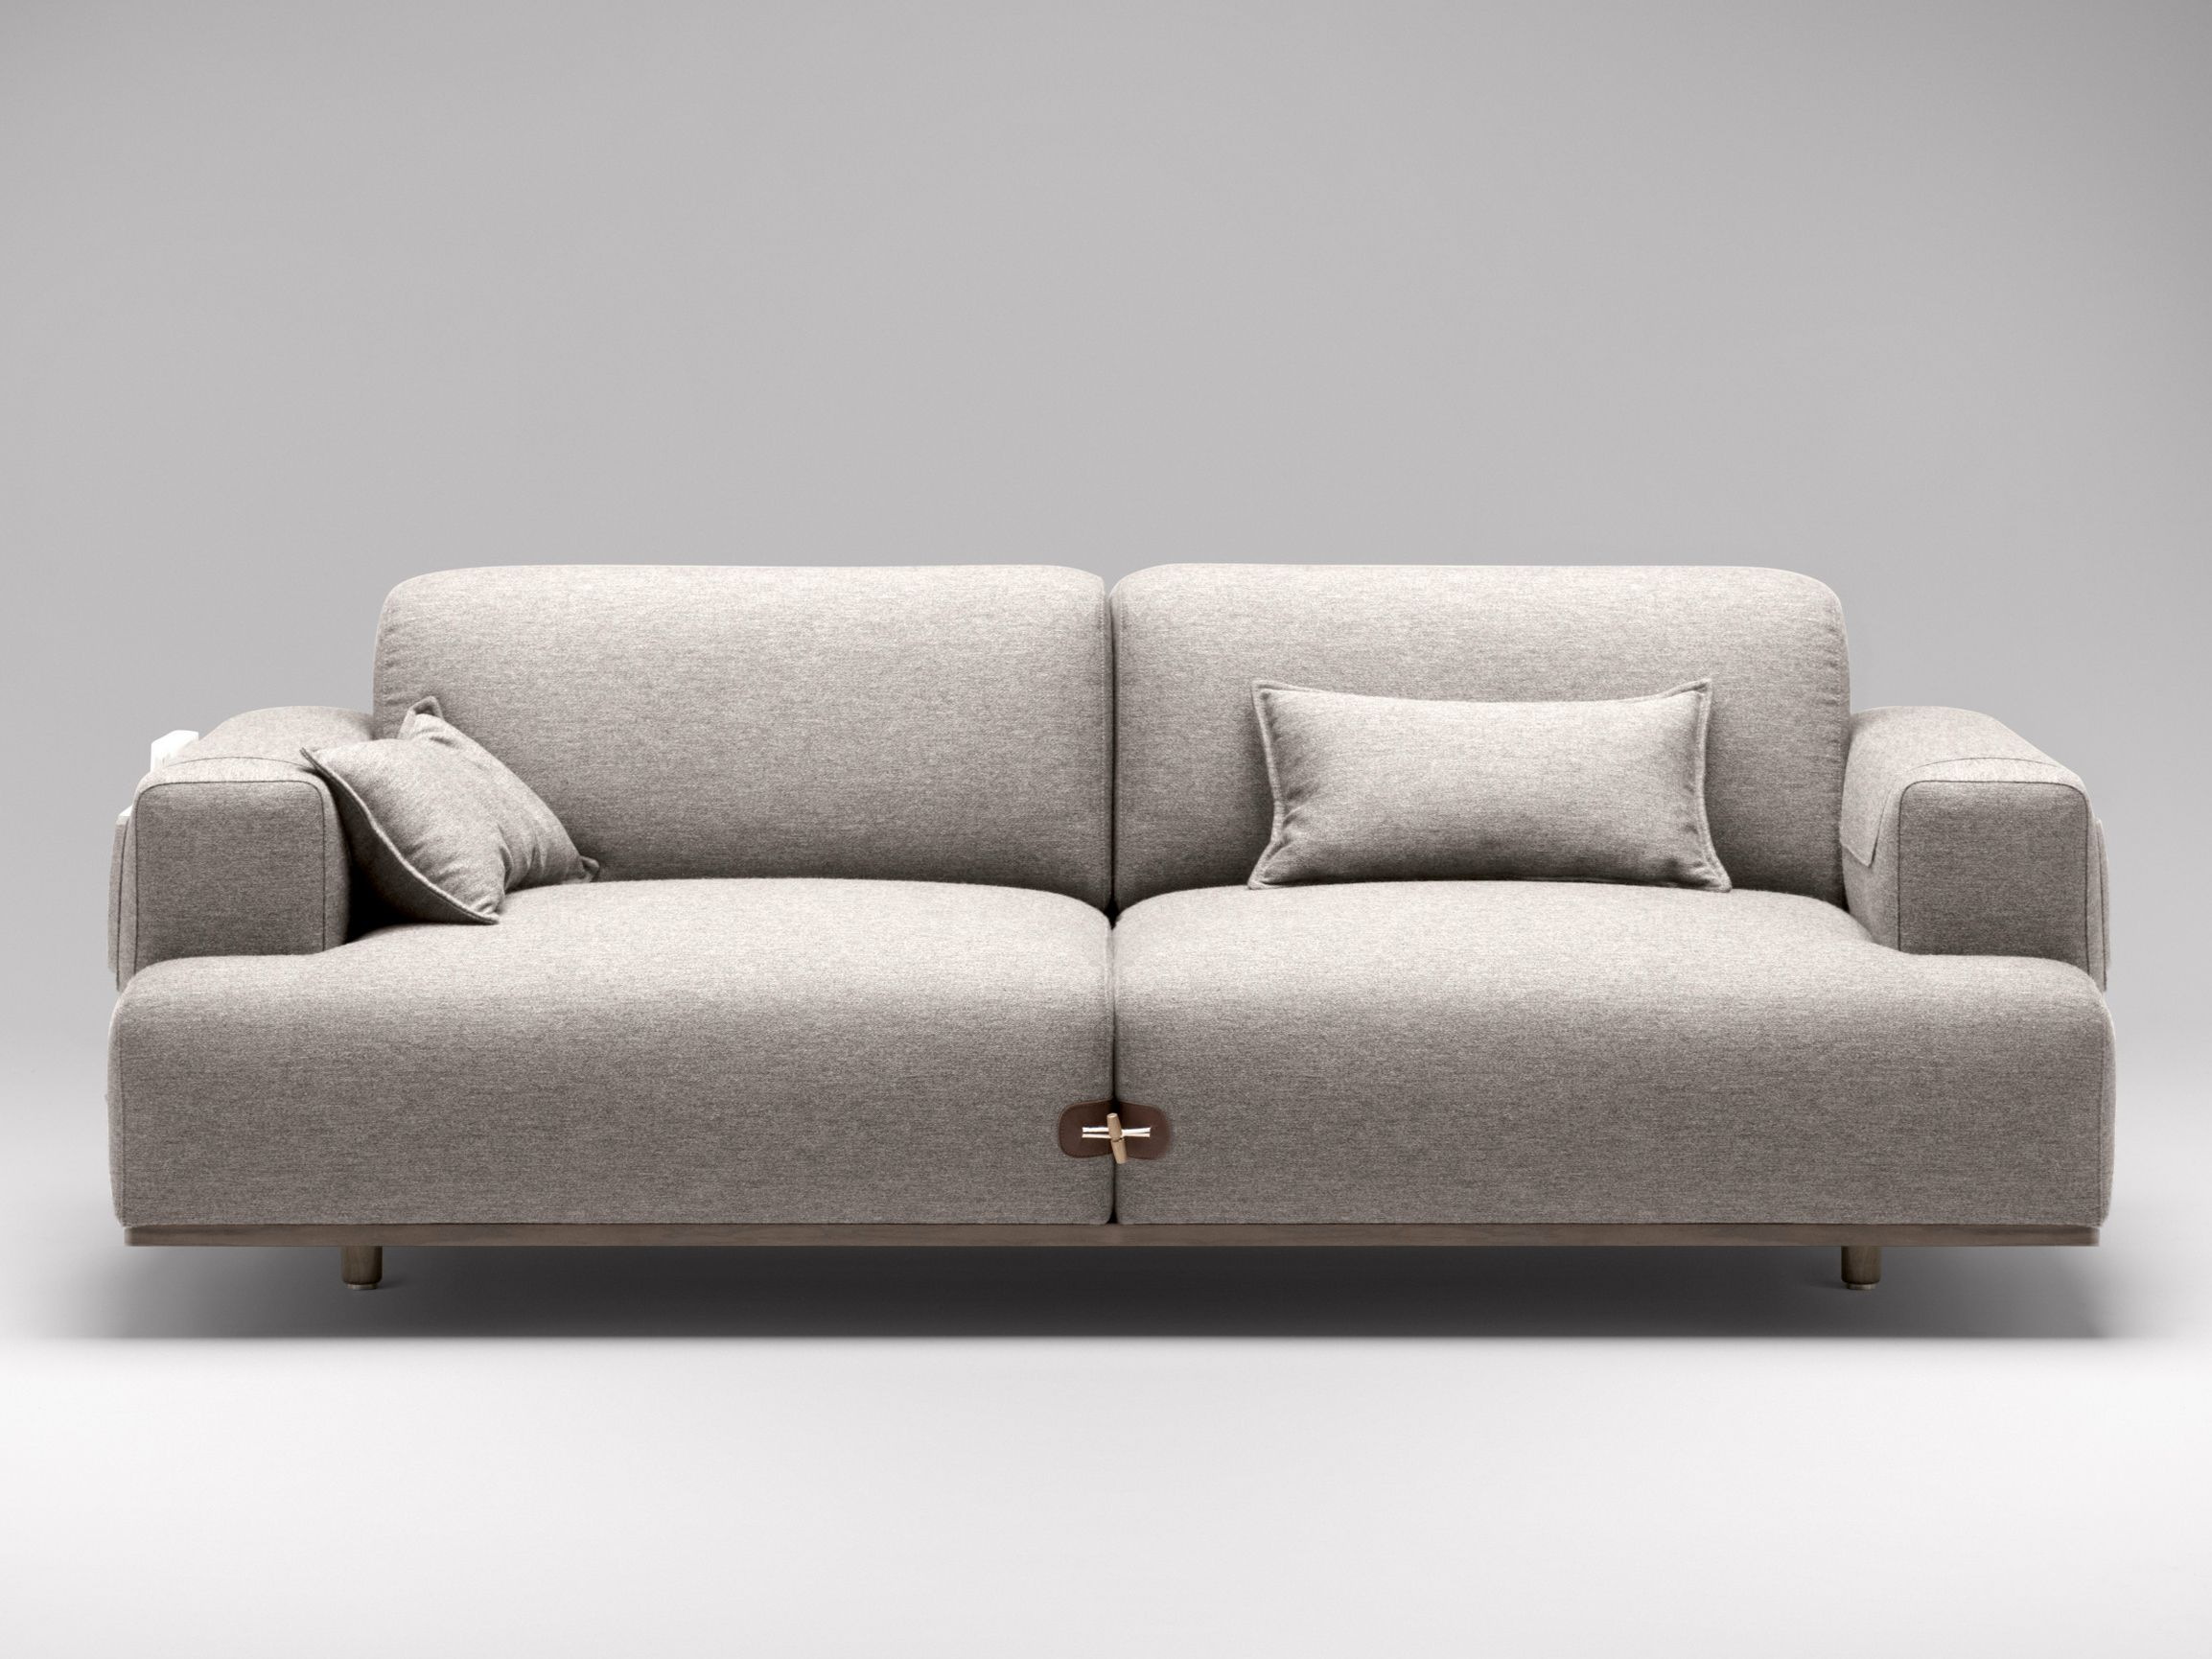 Upholstered fabric sofa with chaise longue Duffle Collection by